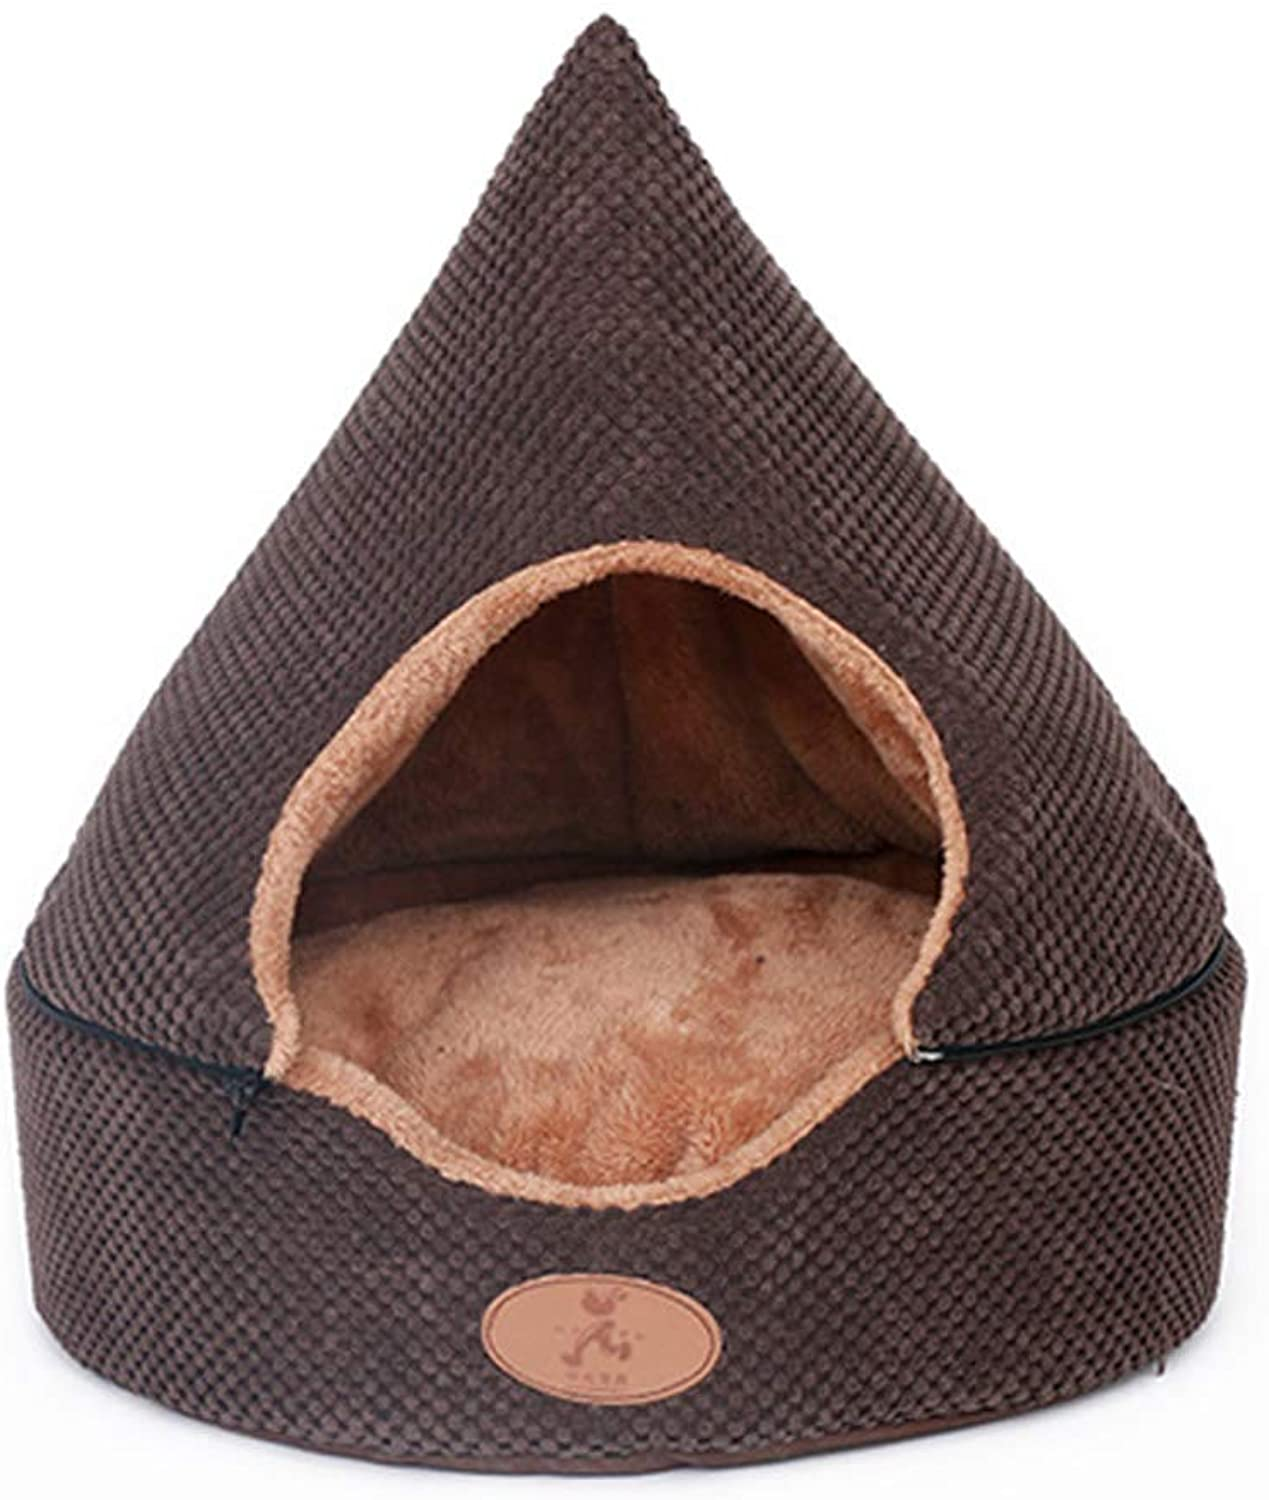 Pet Bed Tent House, 2in 1 Cat Bed House Self Warming Dog Cat Kitten Triangle Puppy Cave Basket with Removable Cushion (color   Coffee, Size   S)